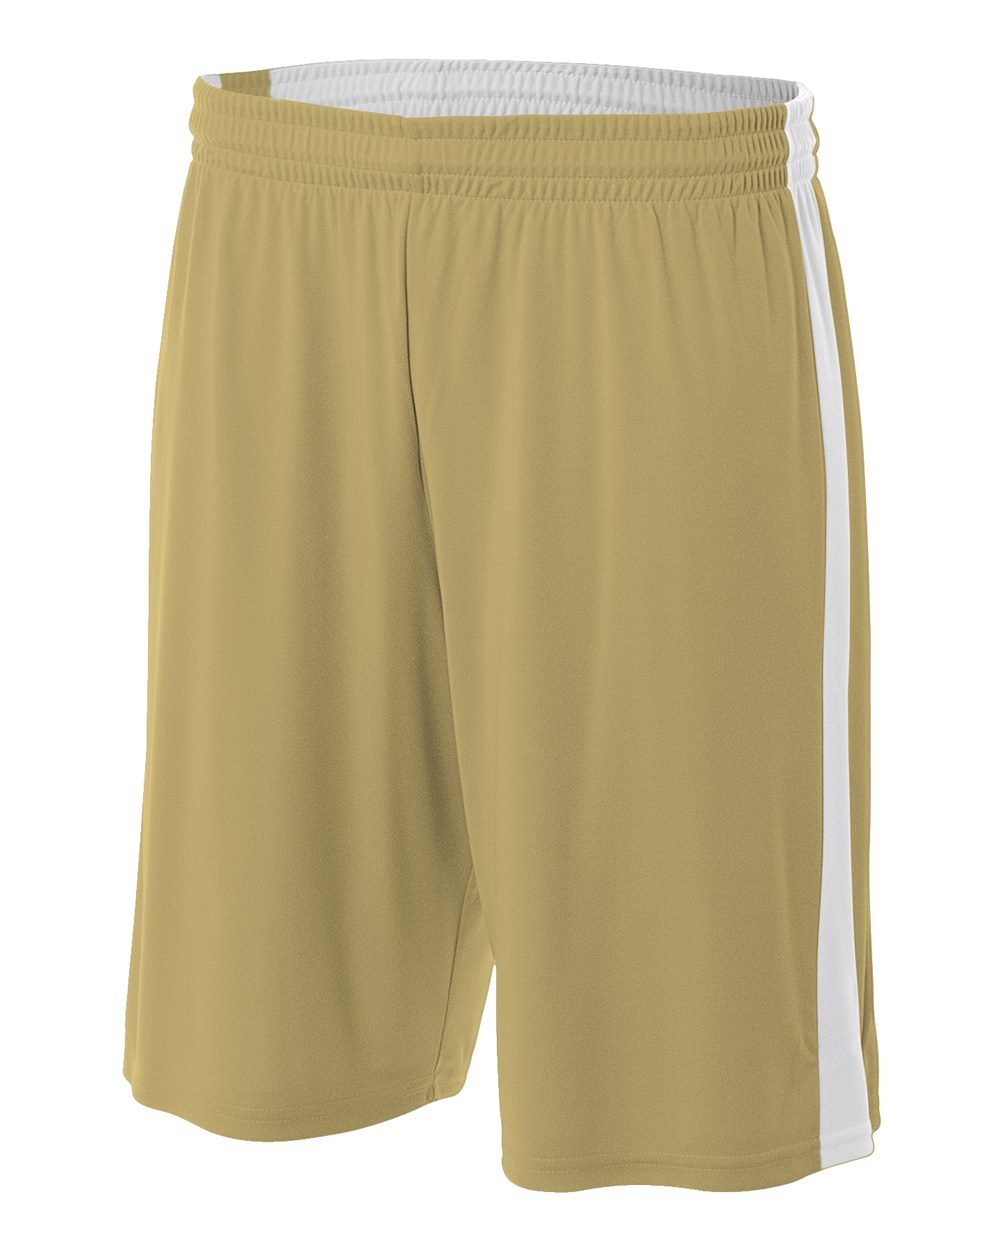 Reversible Vegas Gold/White Youth Large 8'' Uniform Jersey Shorts by A4 Sportswear (Image #1)